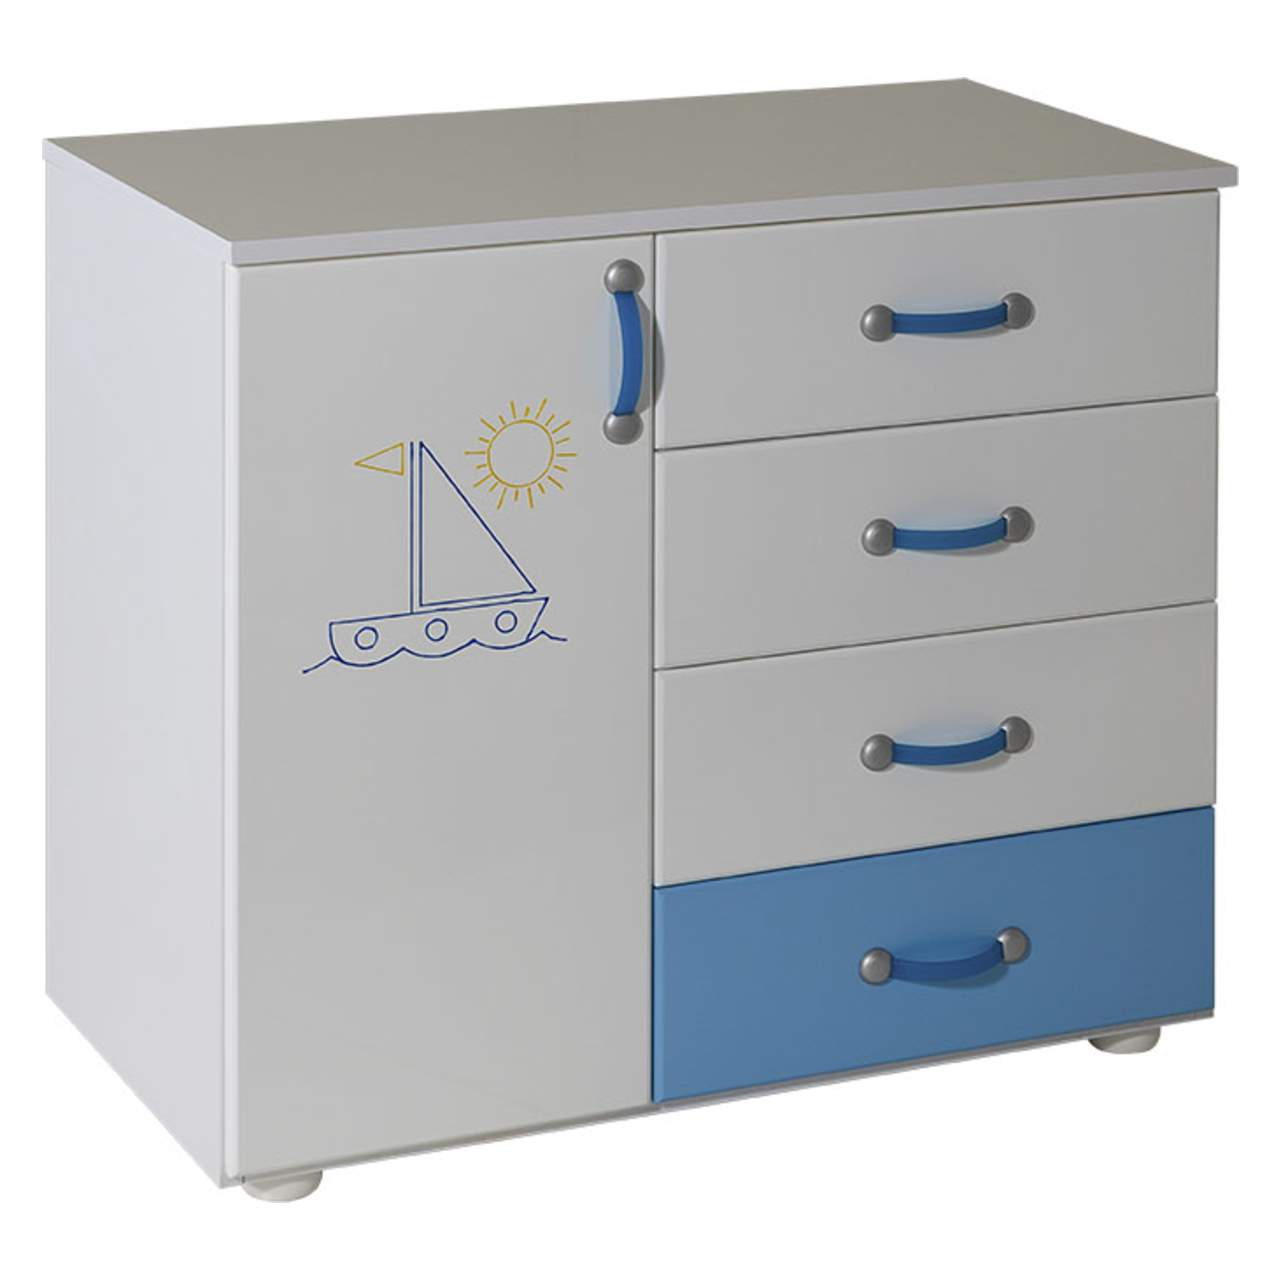 Beautiful Childrens Cabinet With 4 Drawers + Door White For Room Lilly Blue   060  Picture